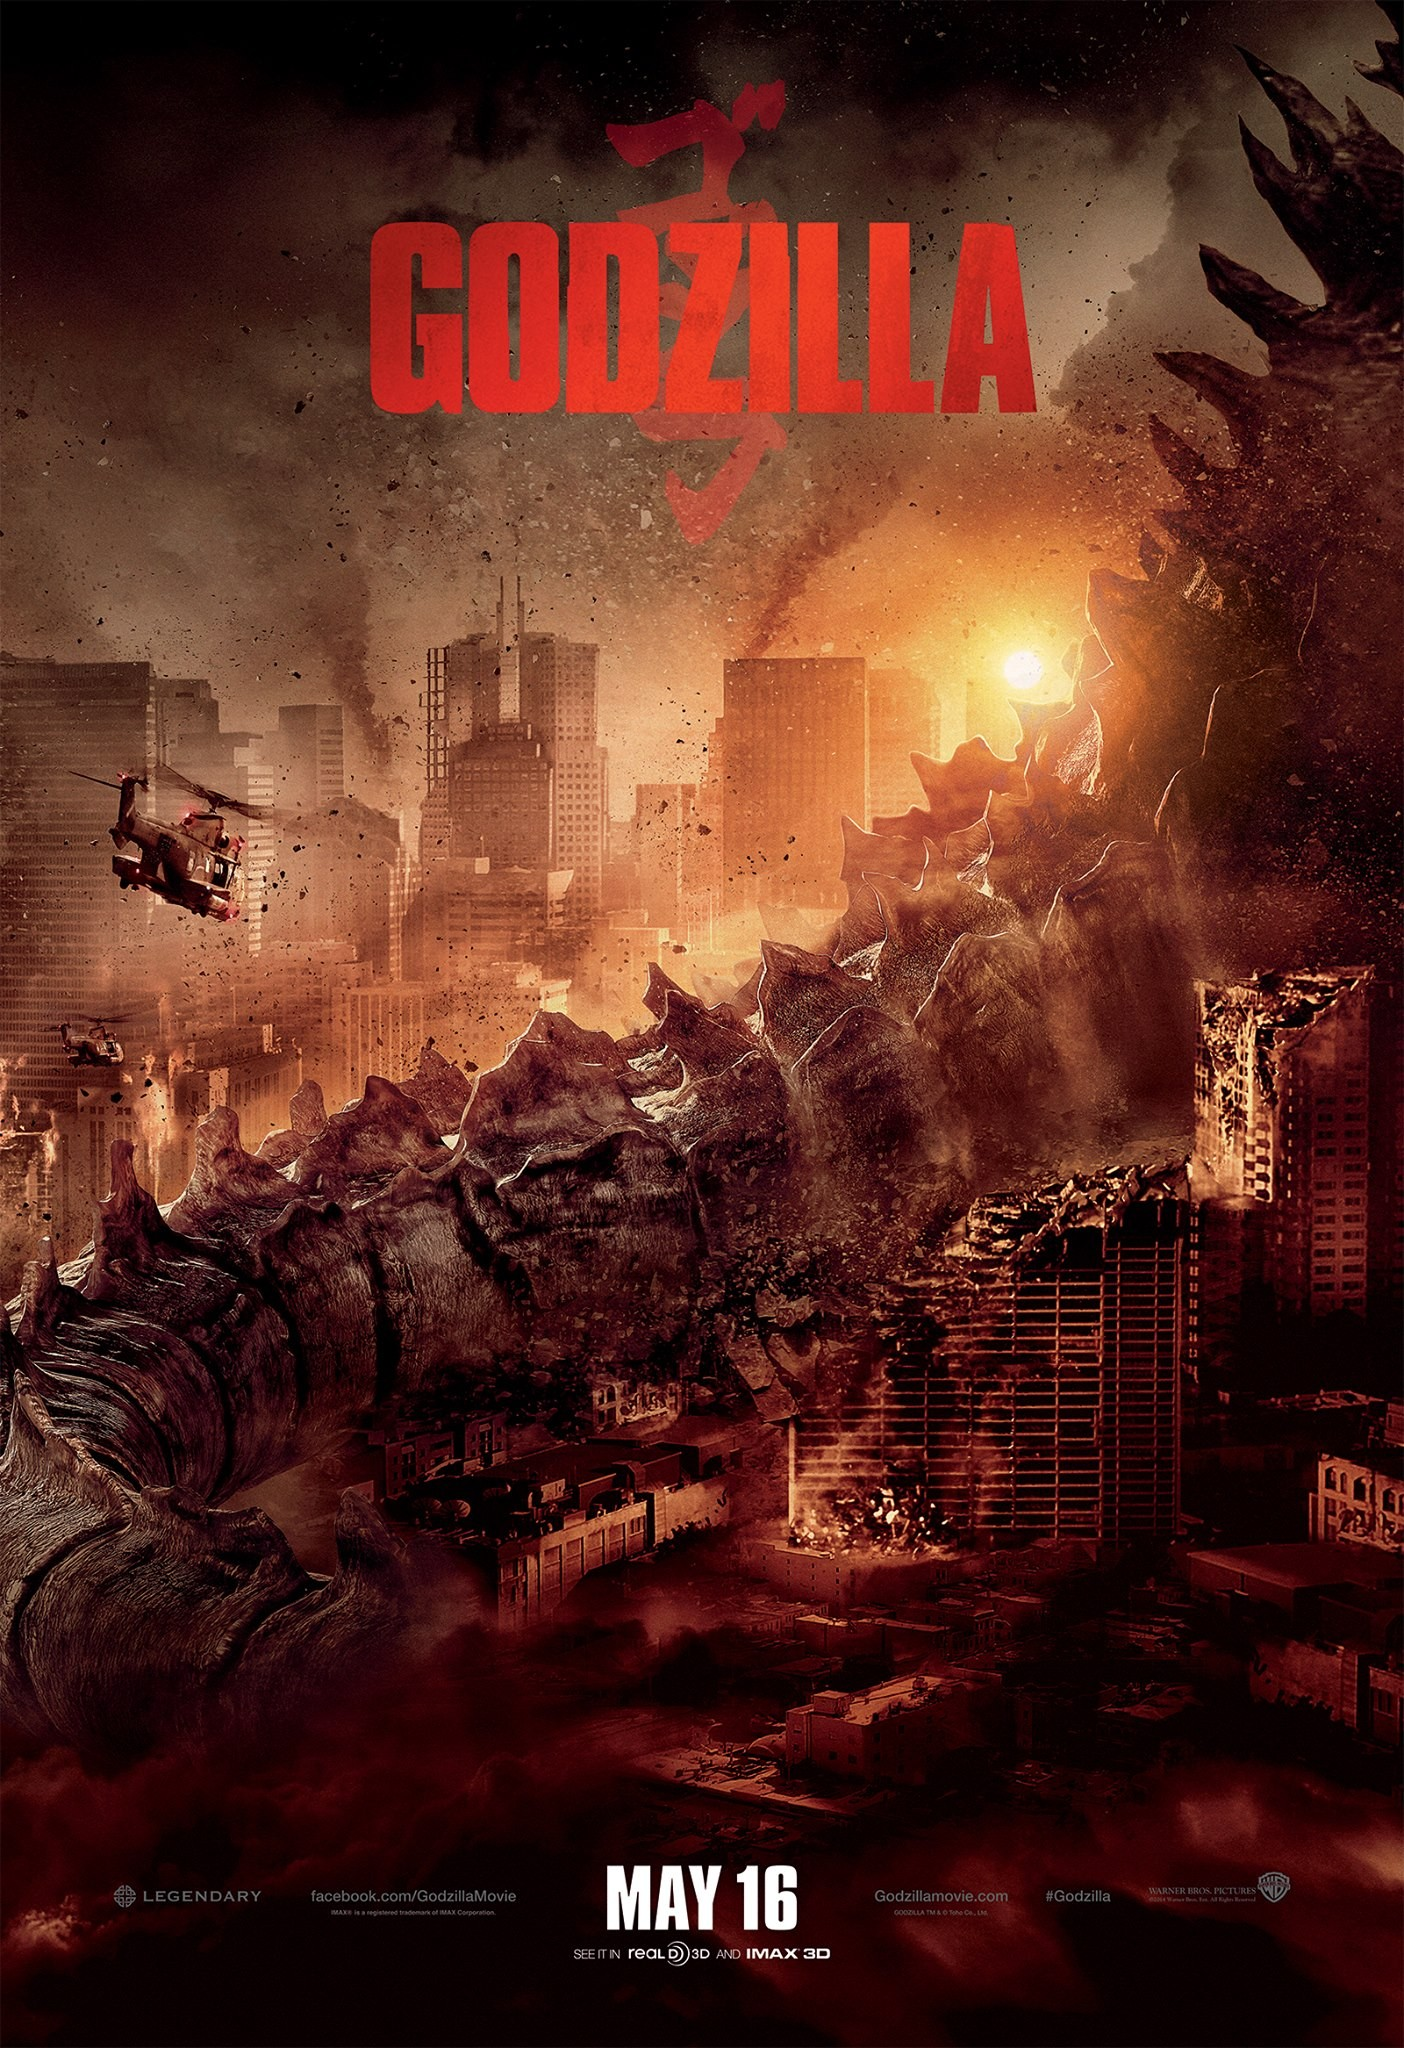 Godzilla-Official Poster Banner PROMO XXLG-20MARCO2014